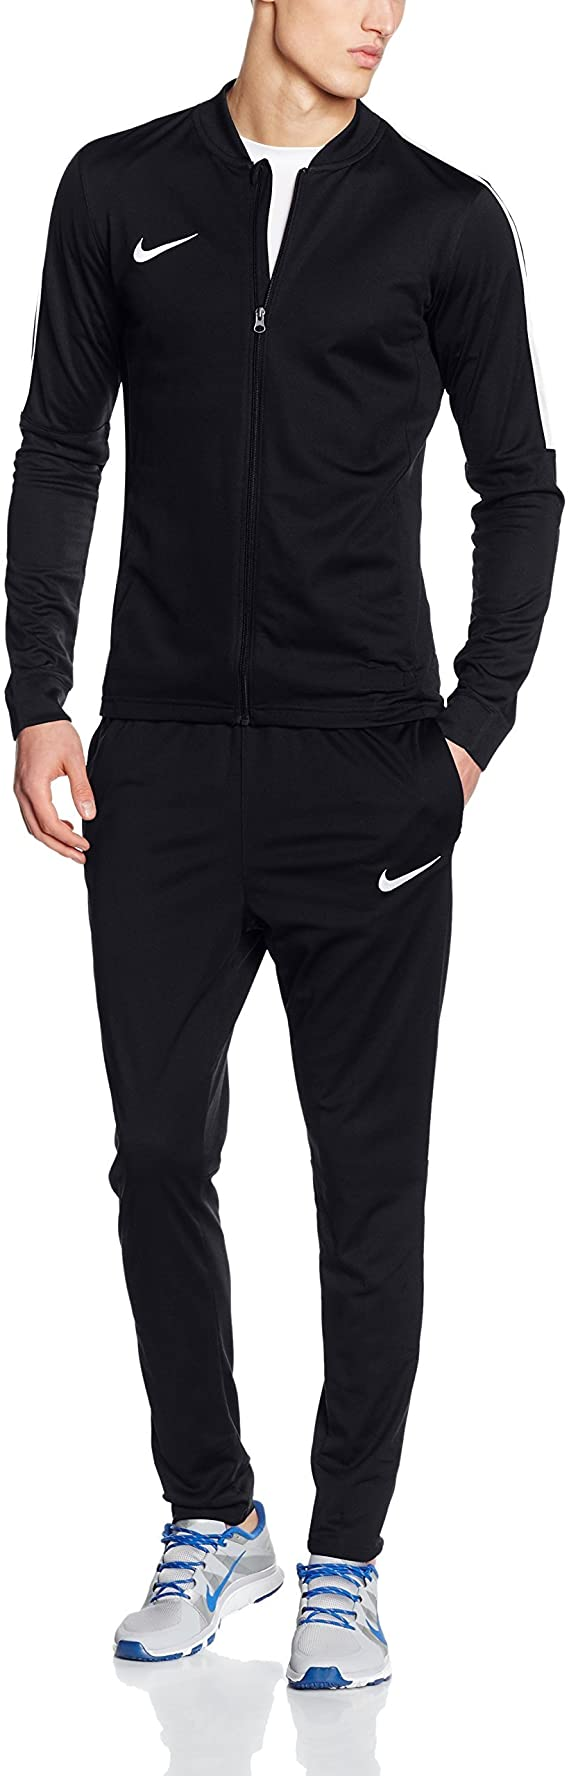 NIKE Academy Warm Up Tracksuit Mens Mens